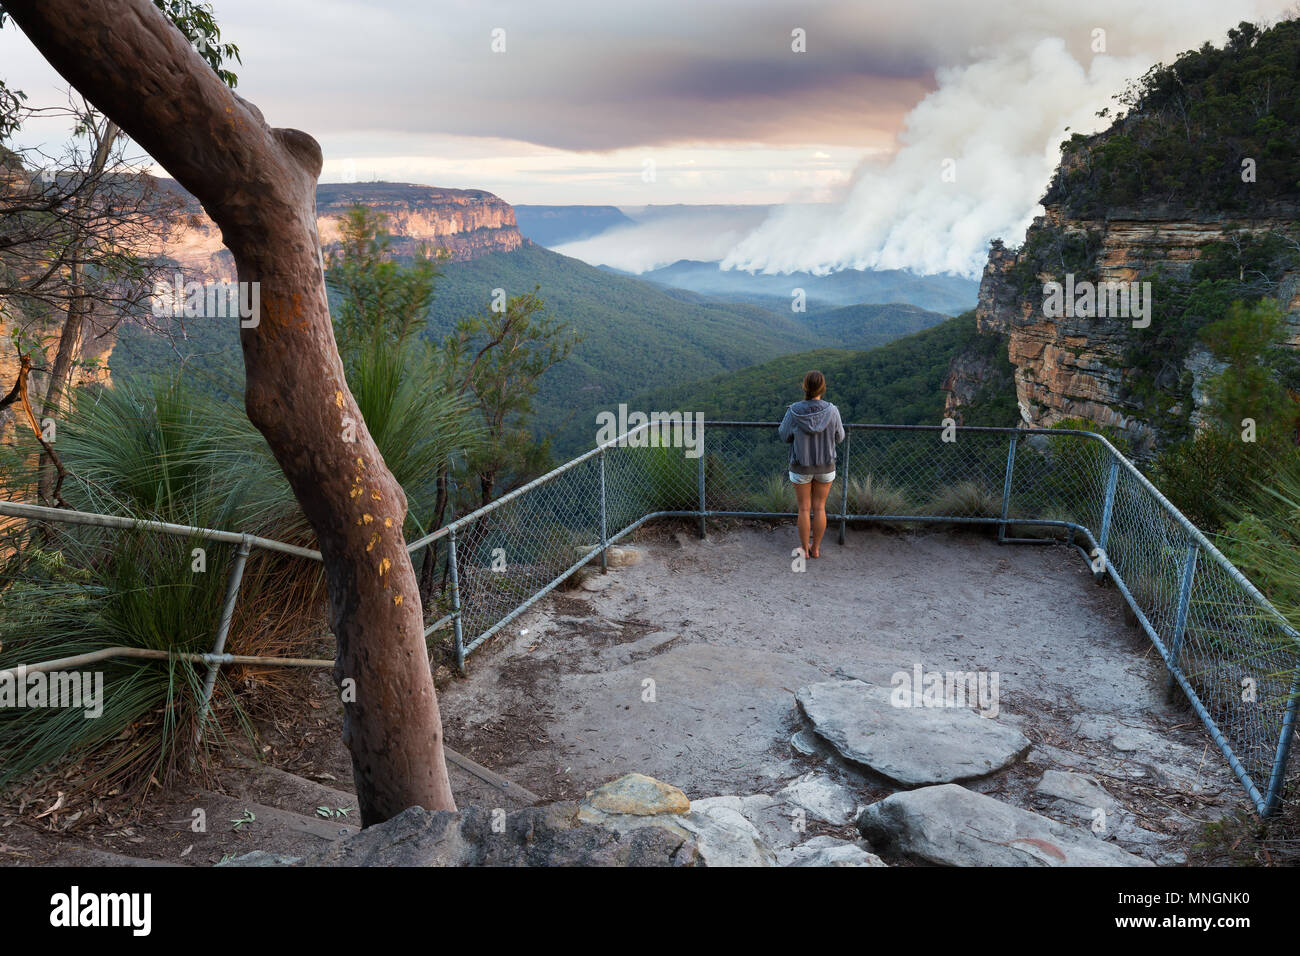 Mädchen an einer goosefeld Lookout mit Blick auf eine entfernte Buschfeuer und Rauch in den Blue Mountains, New South Wales, Australien. Stockbild